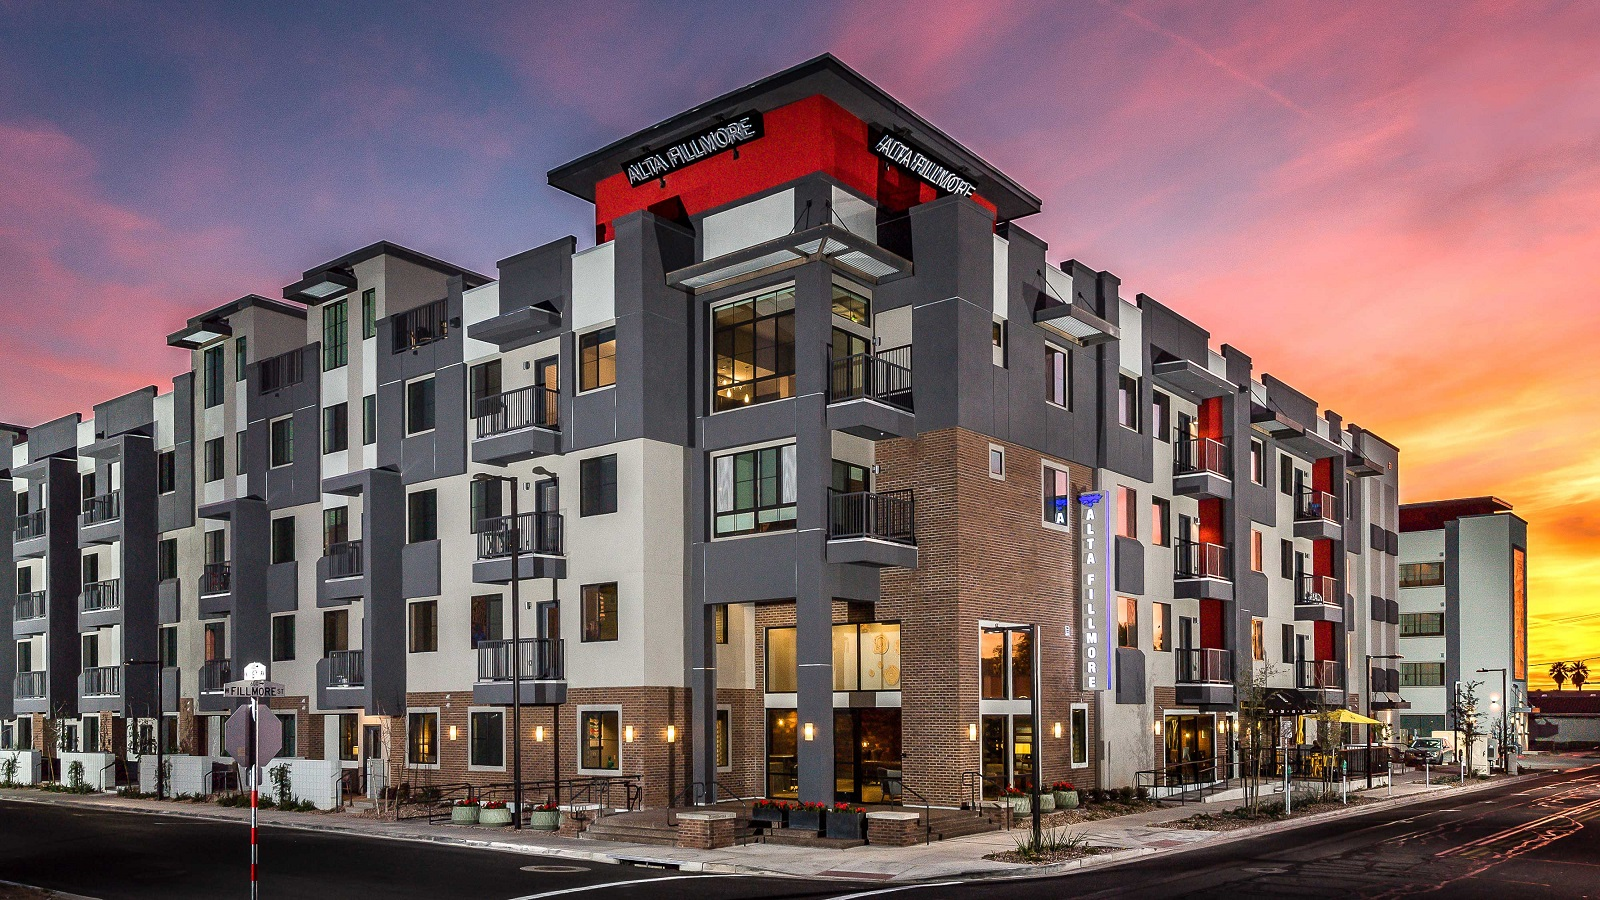 Alta Fillmore Apartments | 601 West Fillmore Street, Phoenix, AZ 85007 | 230 Units | Built in 2016 | $59,000,000 | $256,522 Per Unit | $274.72 Per SF